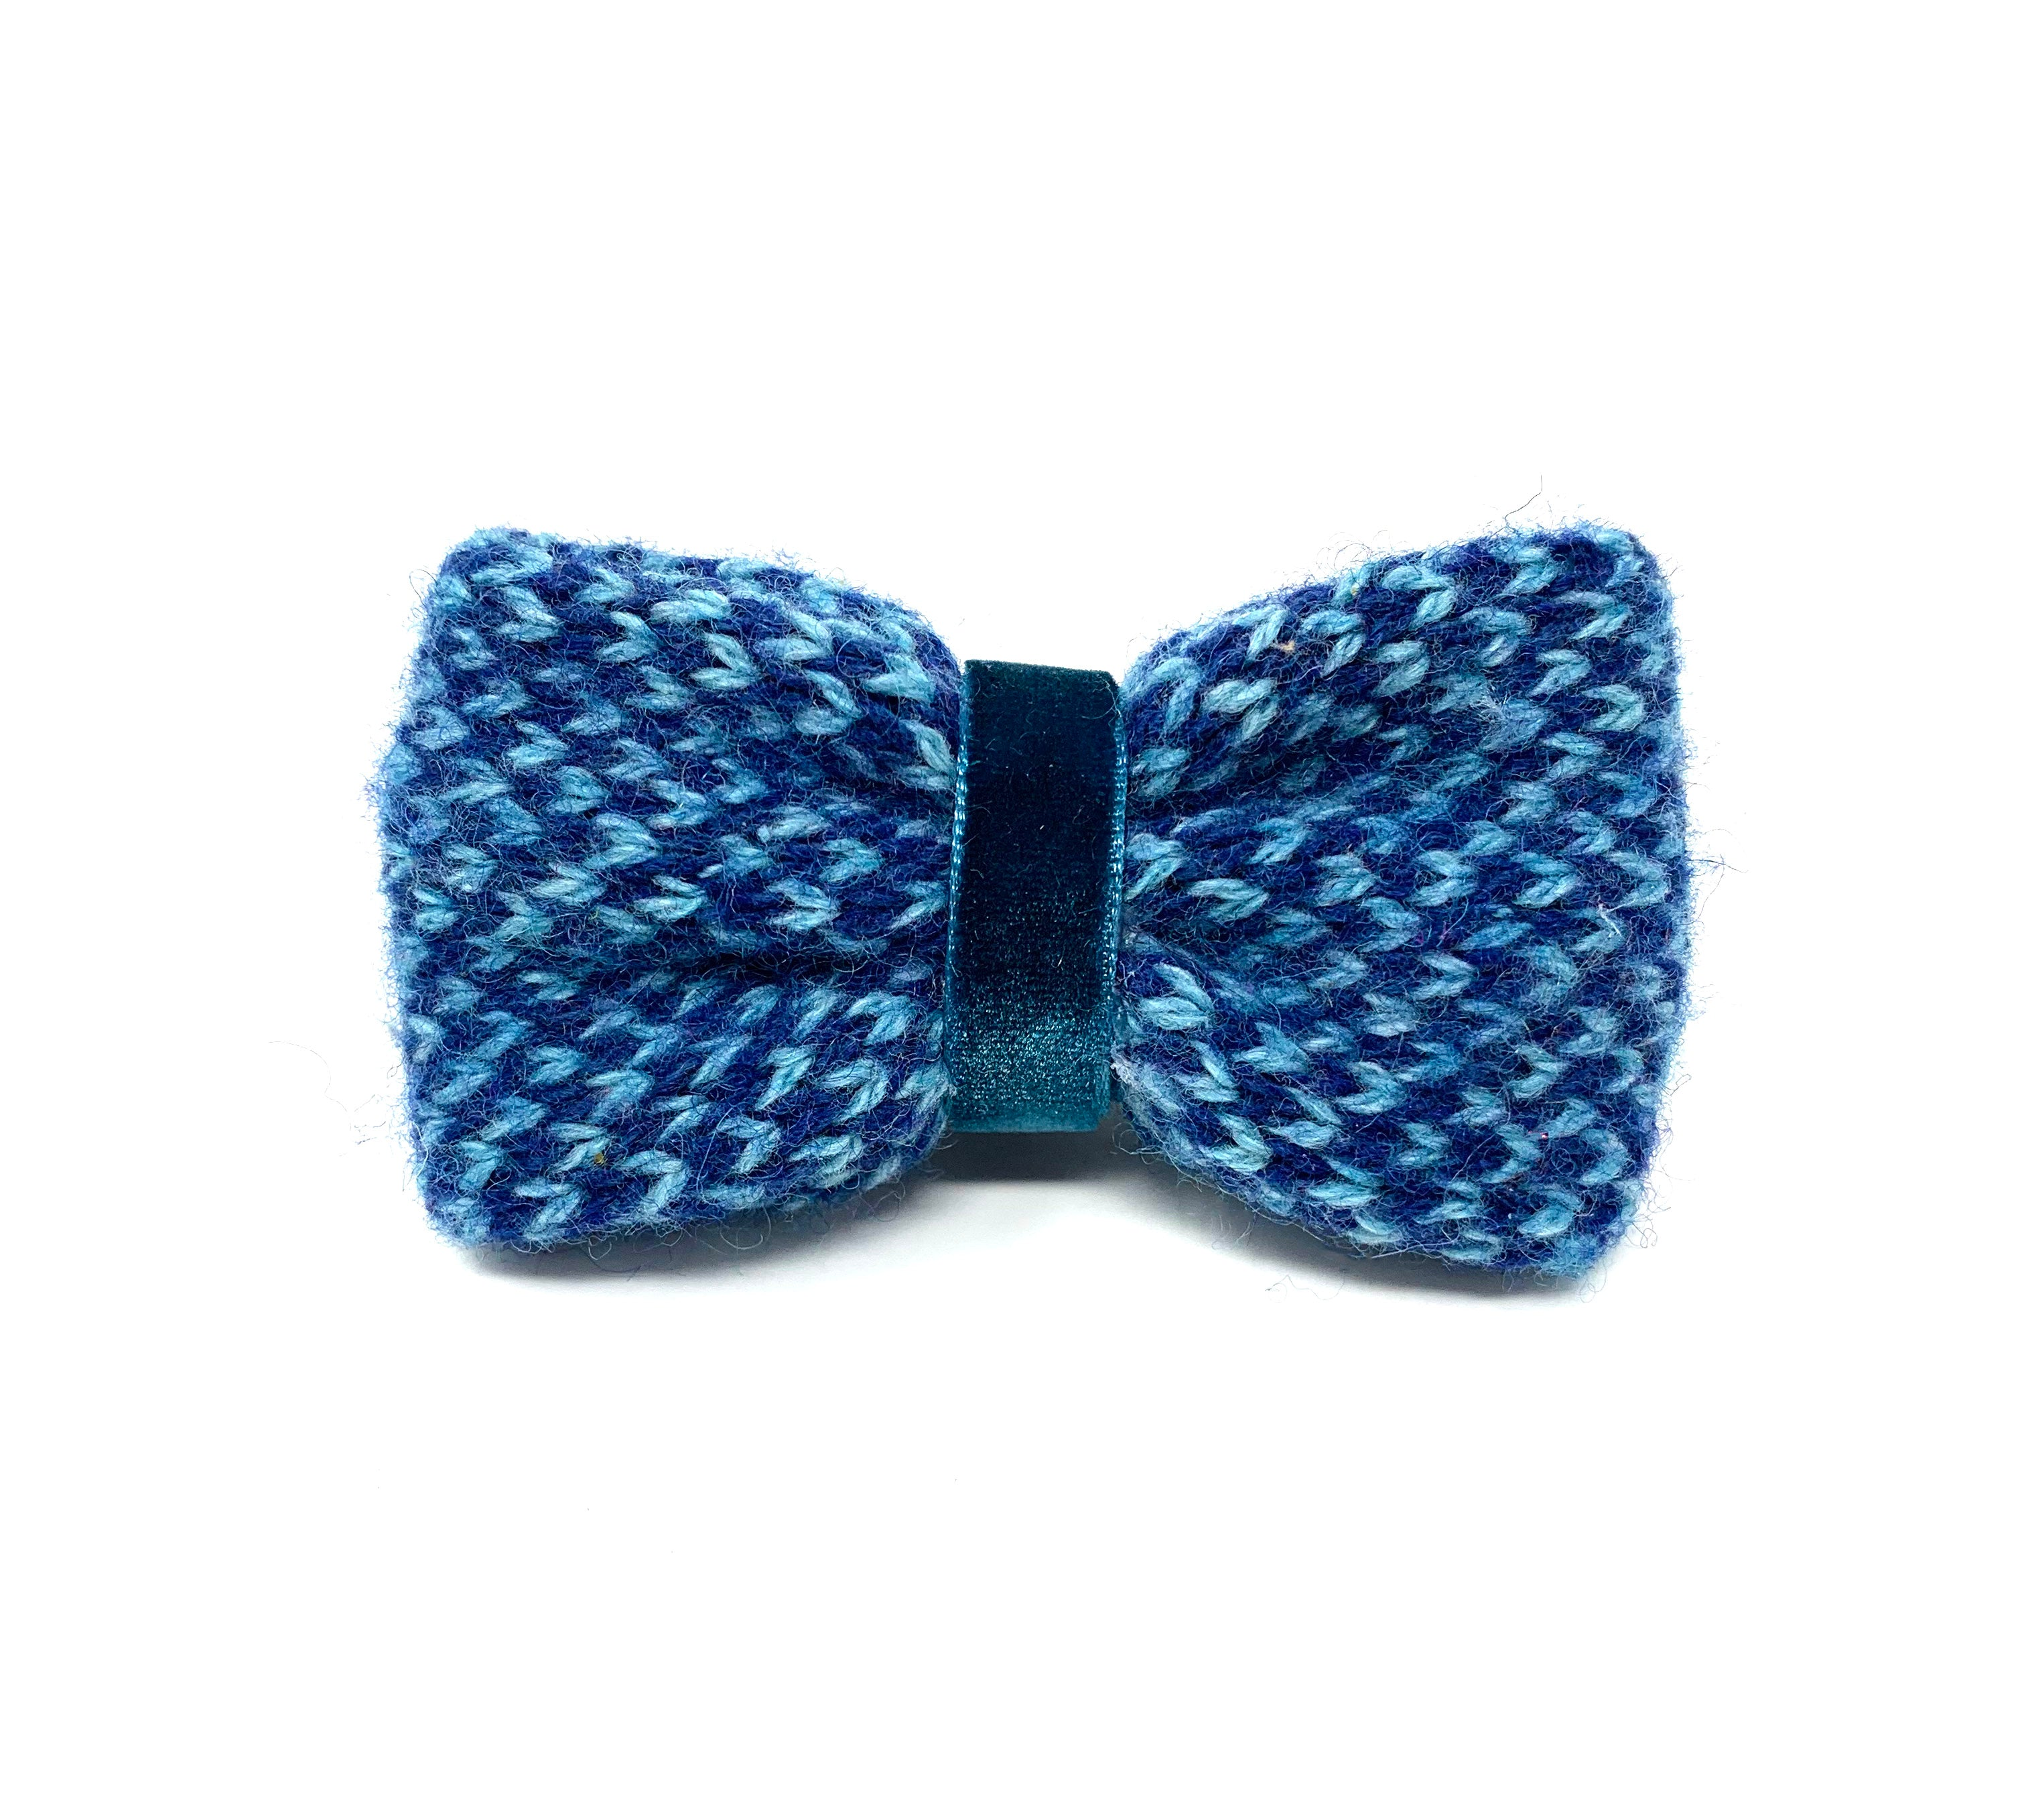 Navy & Turquoise - Harris Design - Bow Tie